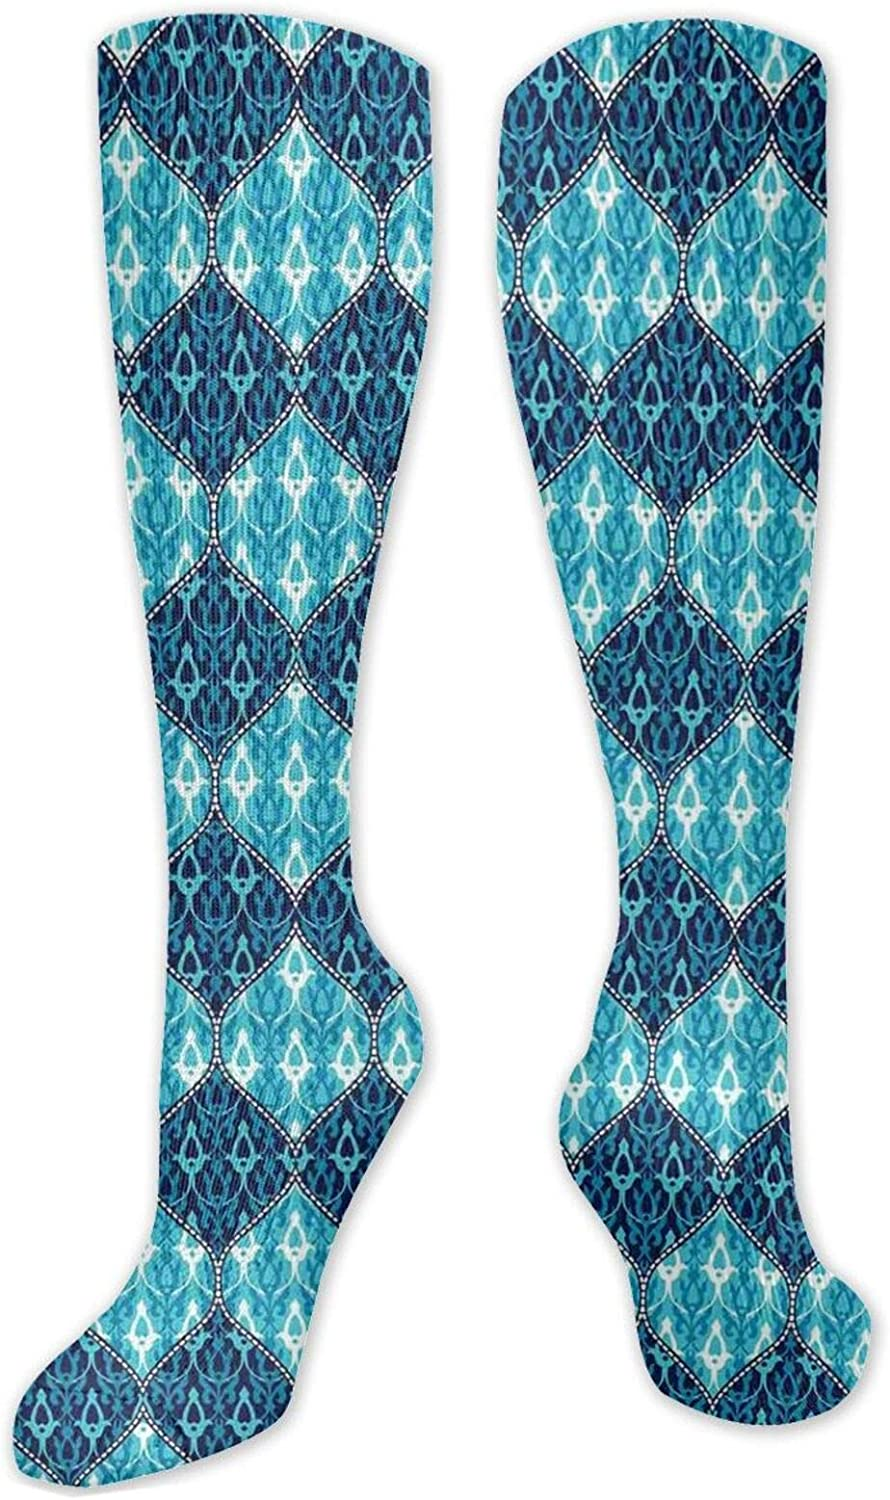 Compression Socks discount for WomenMen Knee High Los Angeles Mall Size(50C Sock One